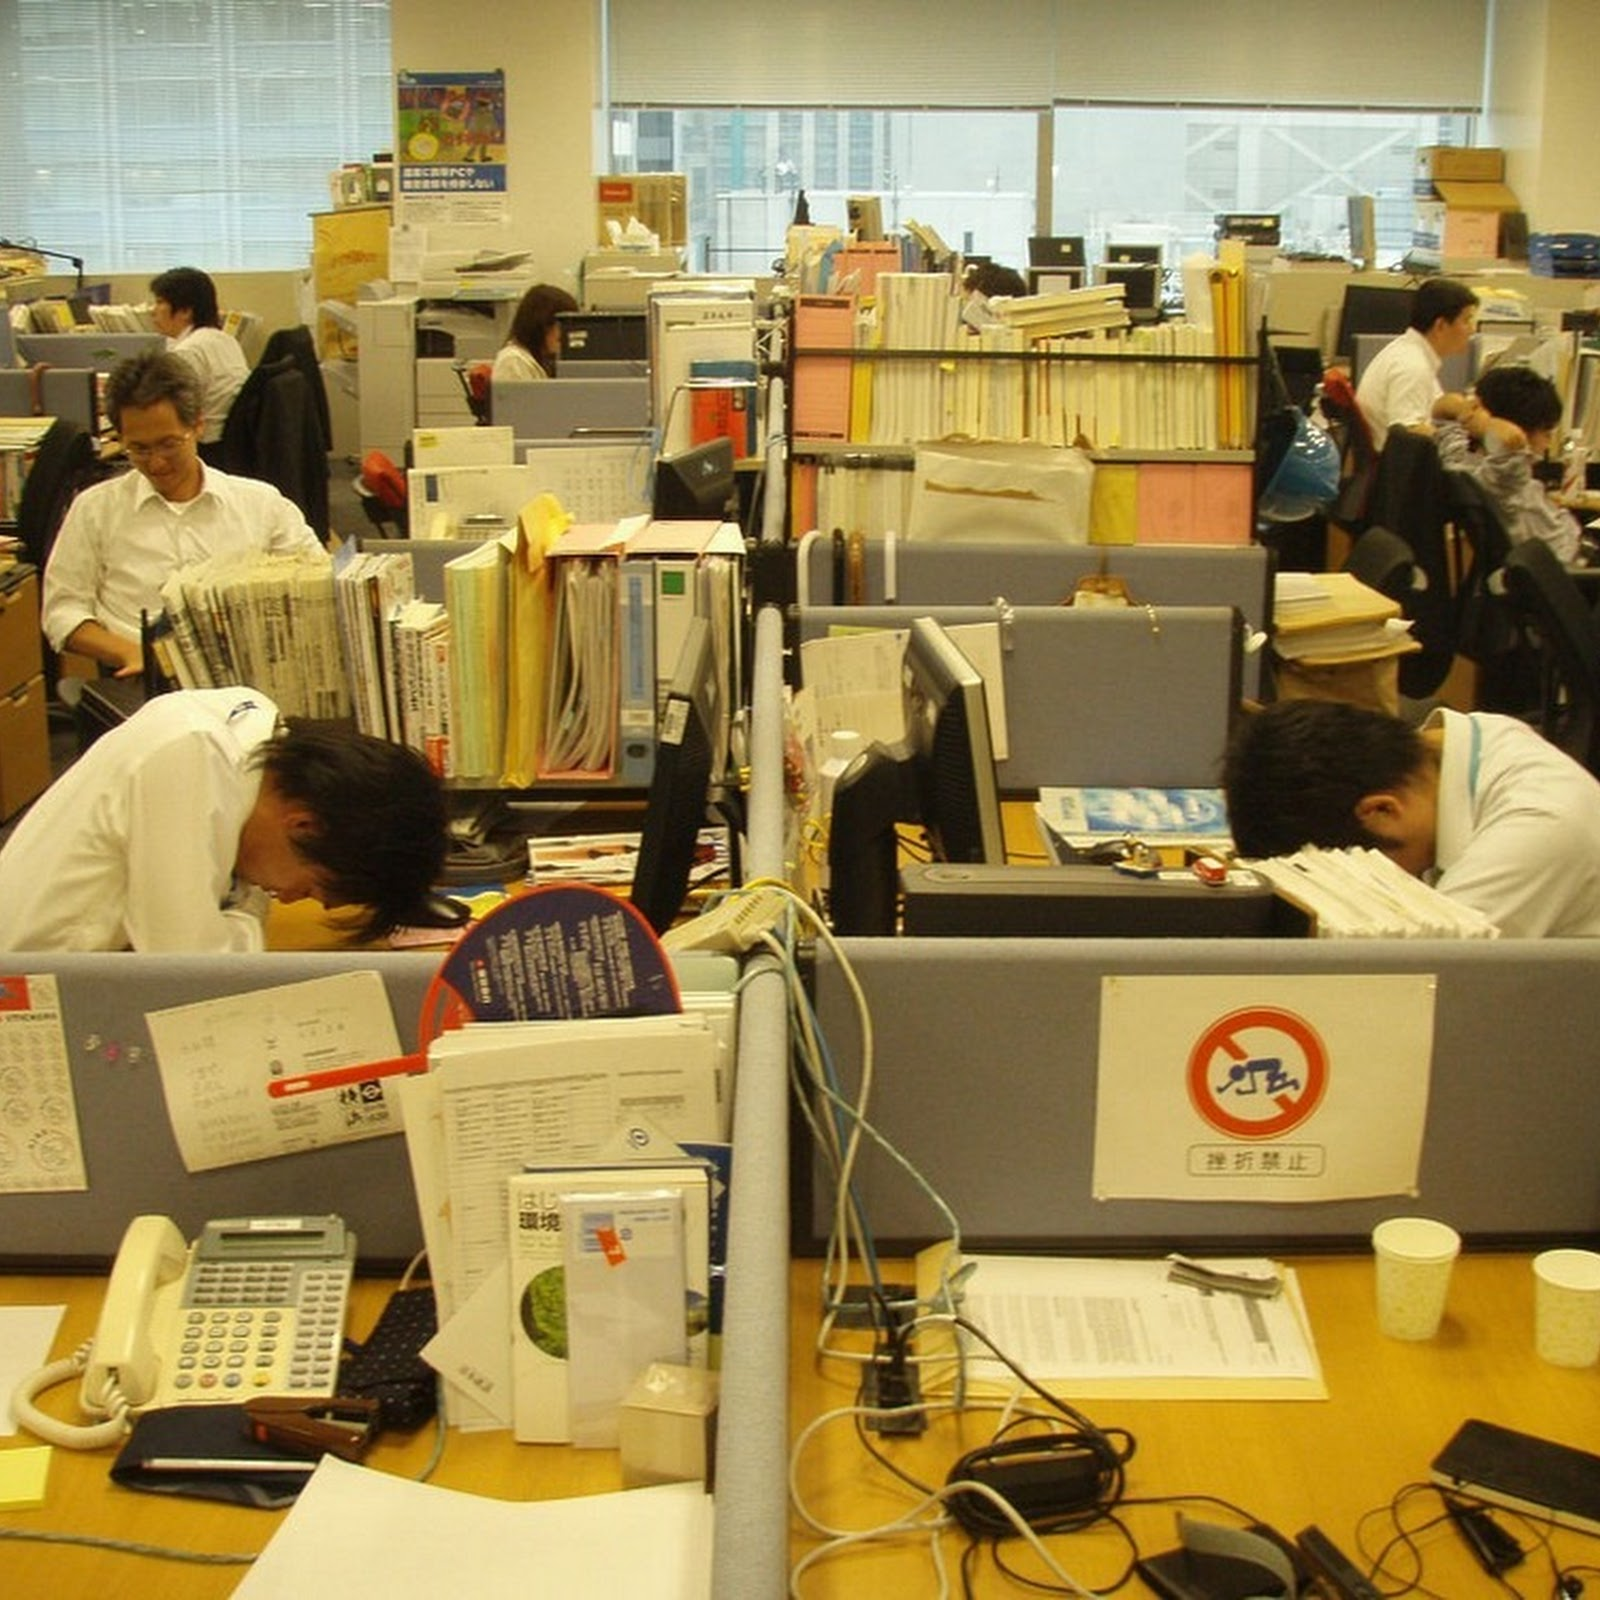 Inemuri, The Japanese Art of Sleeping at Work